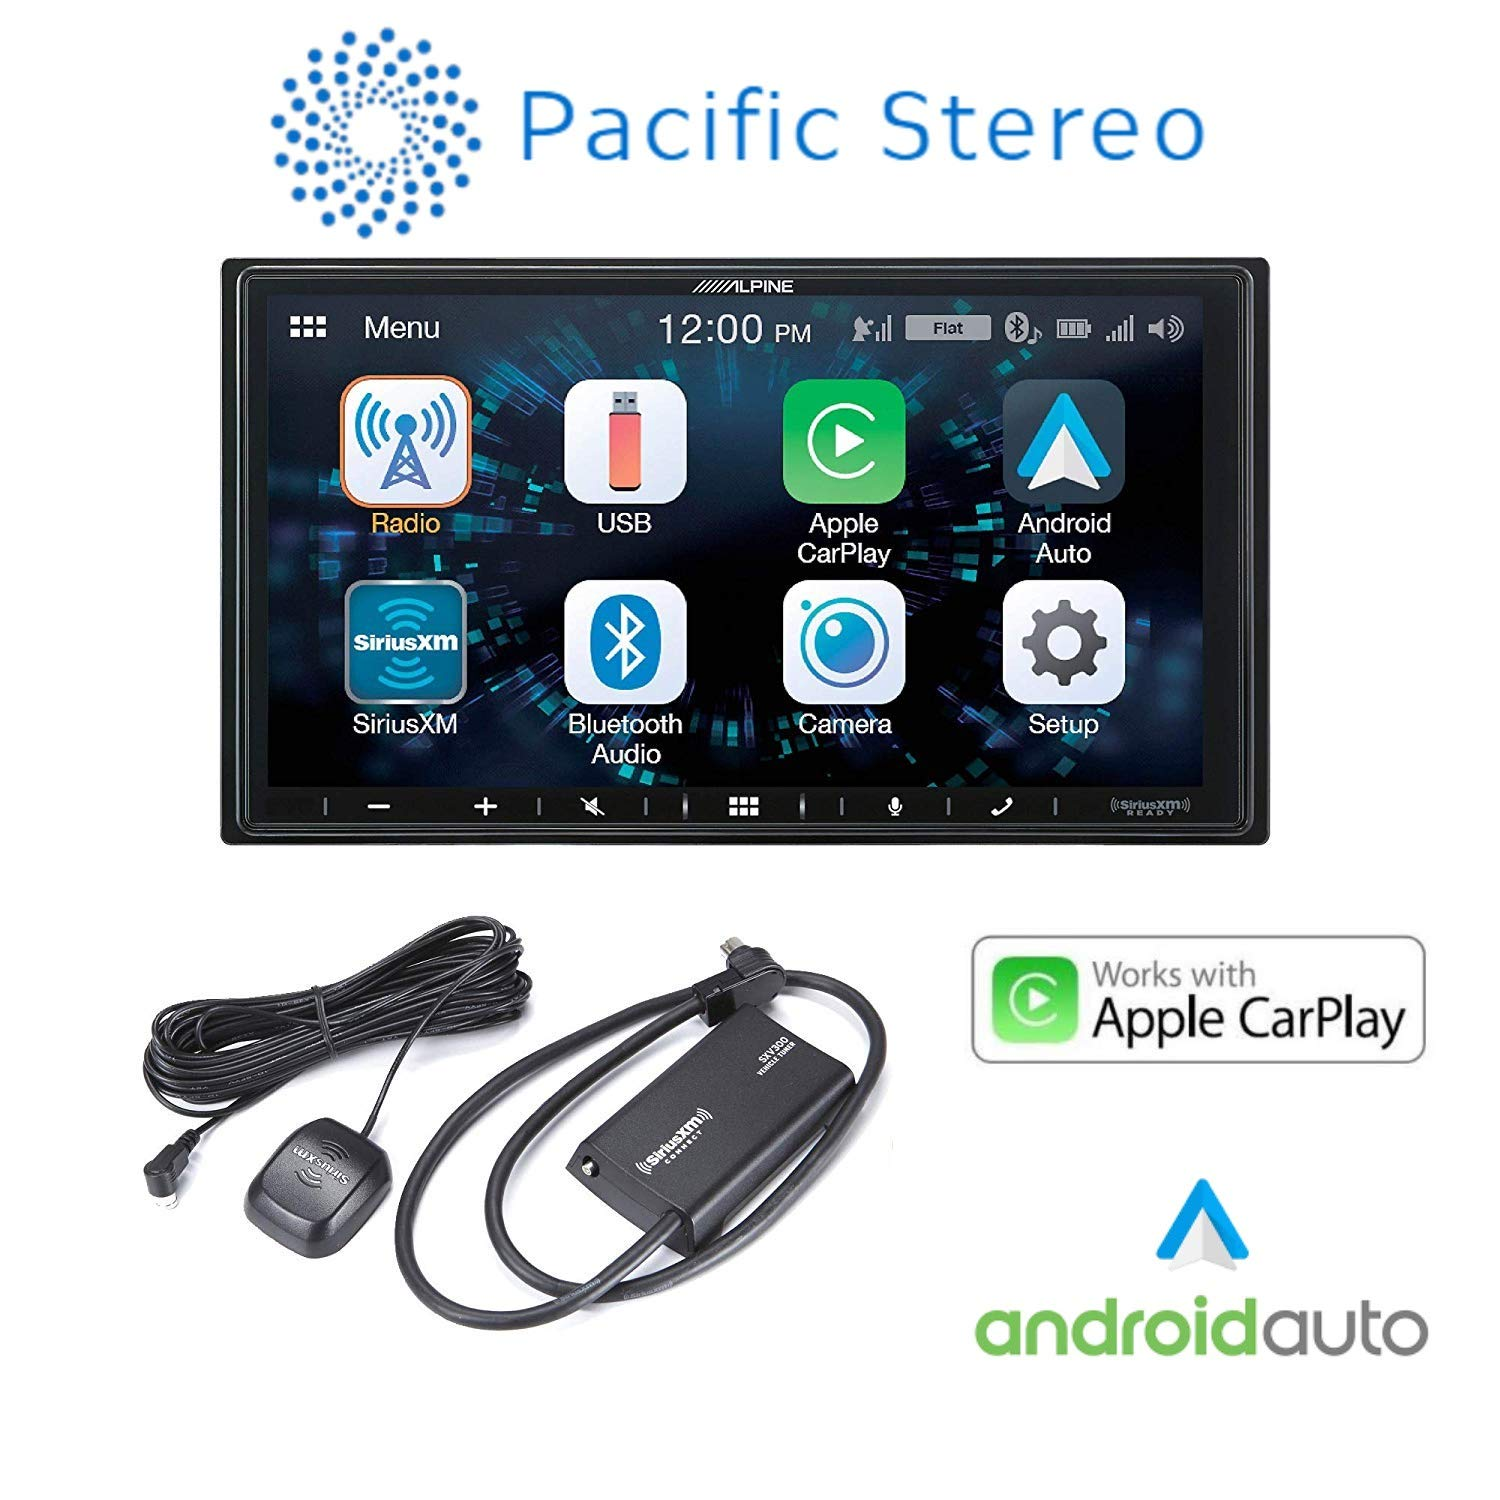 Alpine iLX-W650 Compatible with CarPlay & Android Auto - Includes SXV300V1 Sirius XM Tuner by Alpine